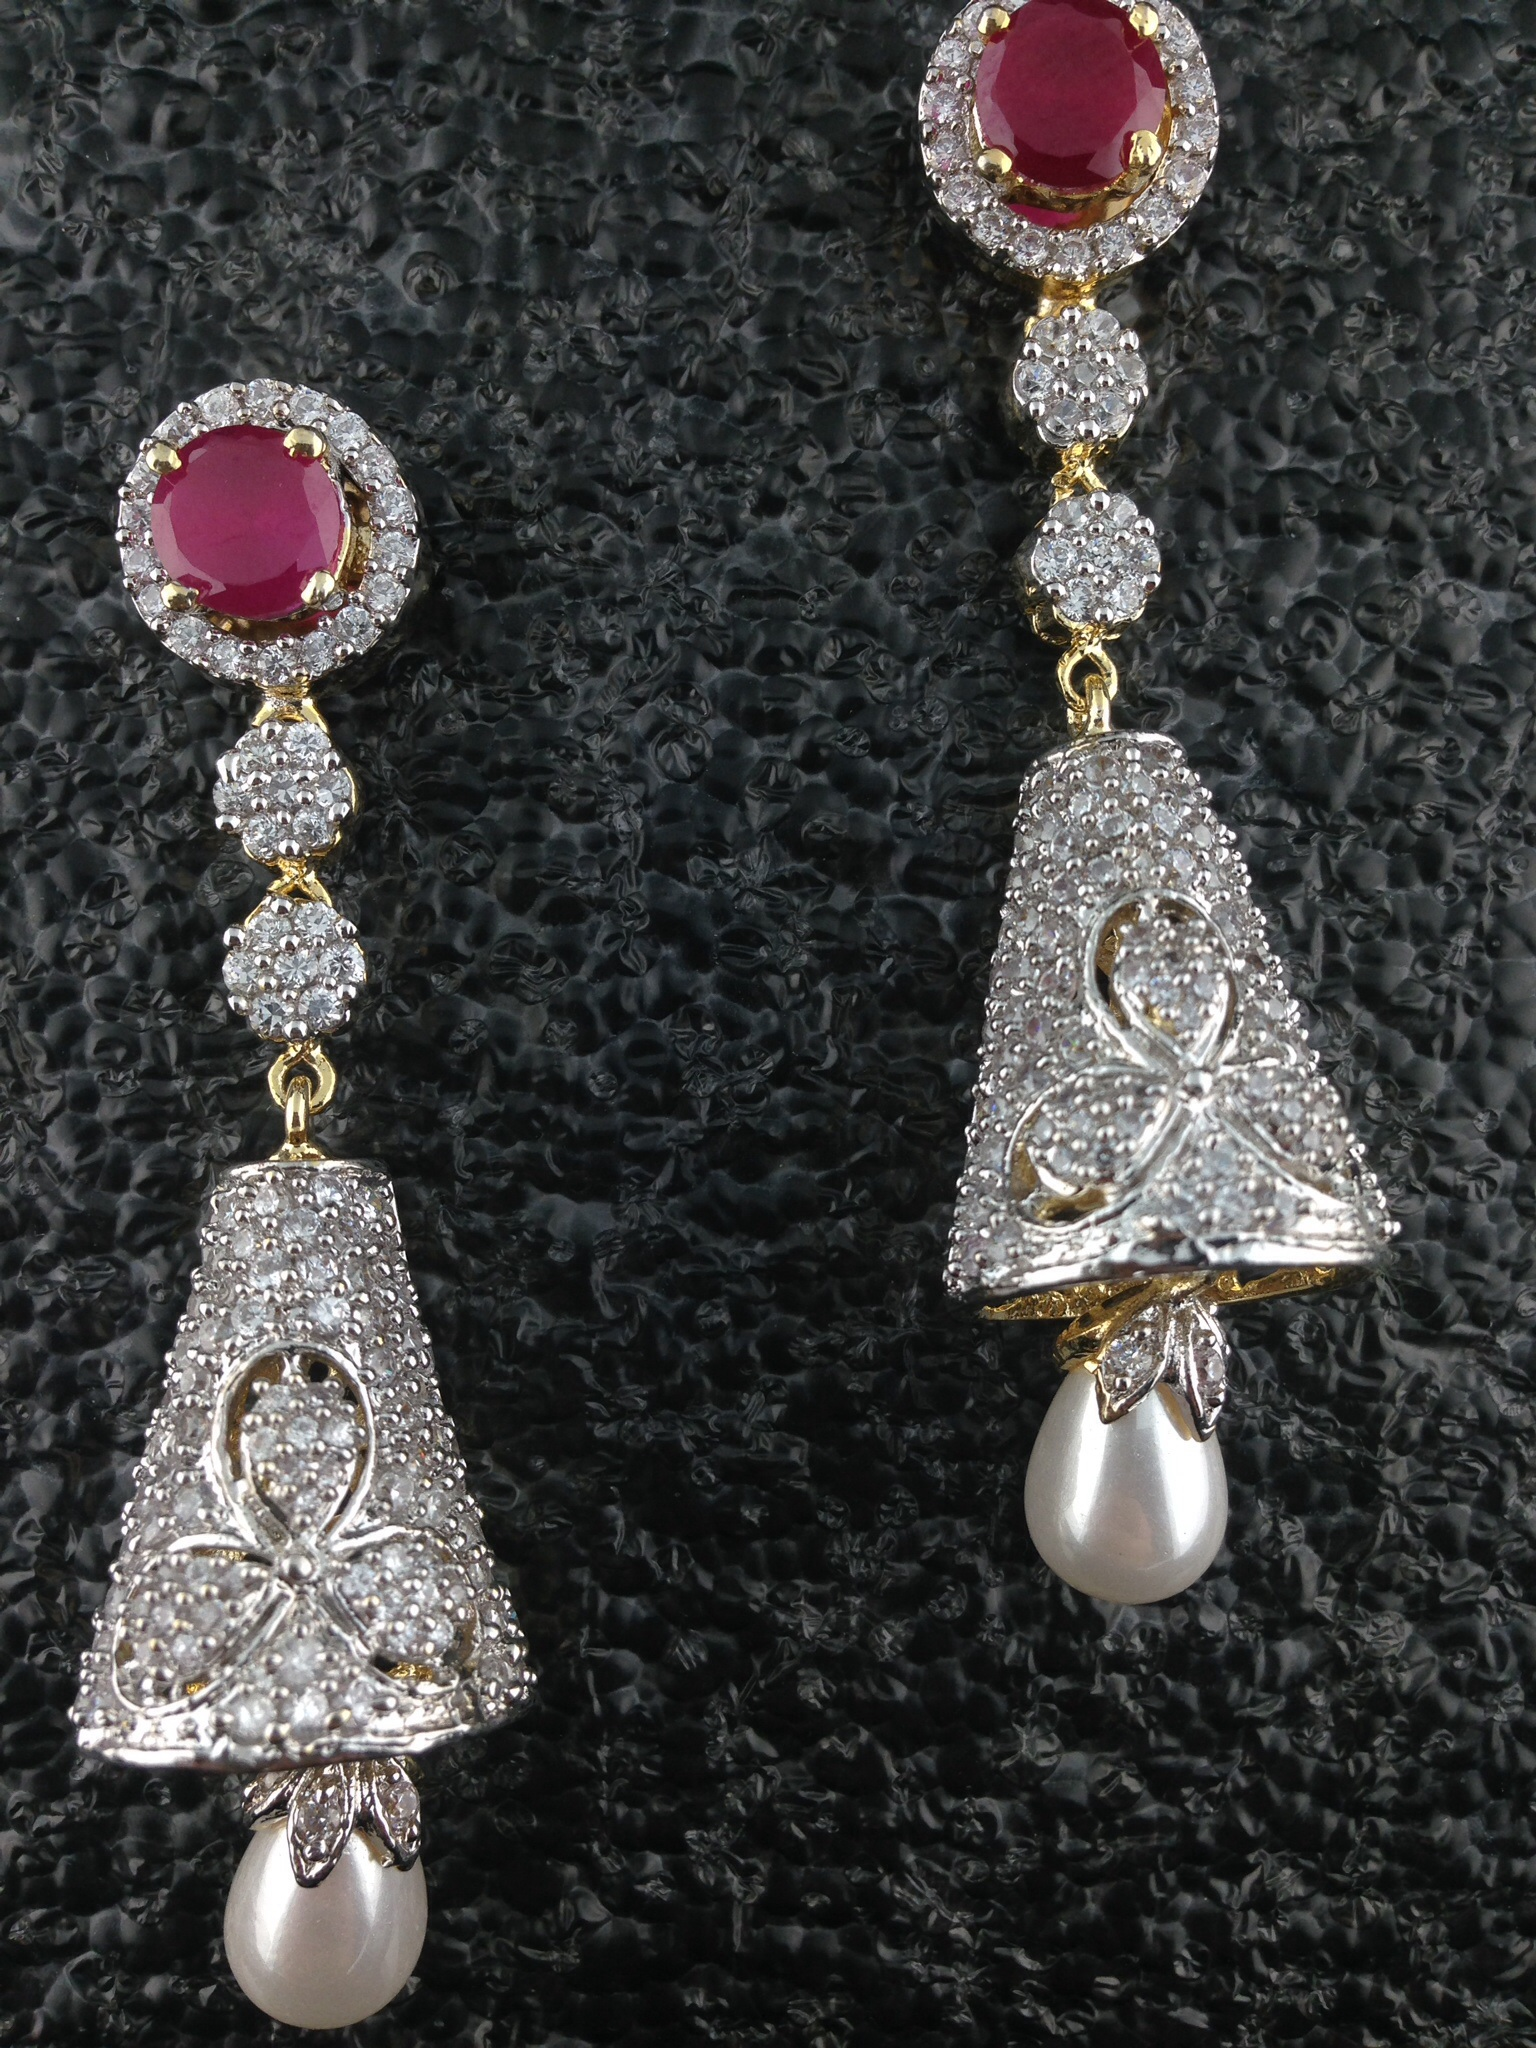 CZ Designer Long Earrings With Rubies and Pearls.